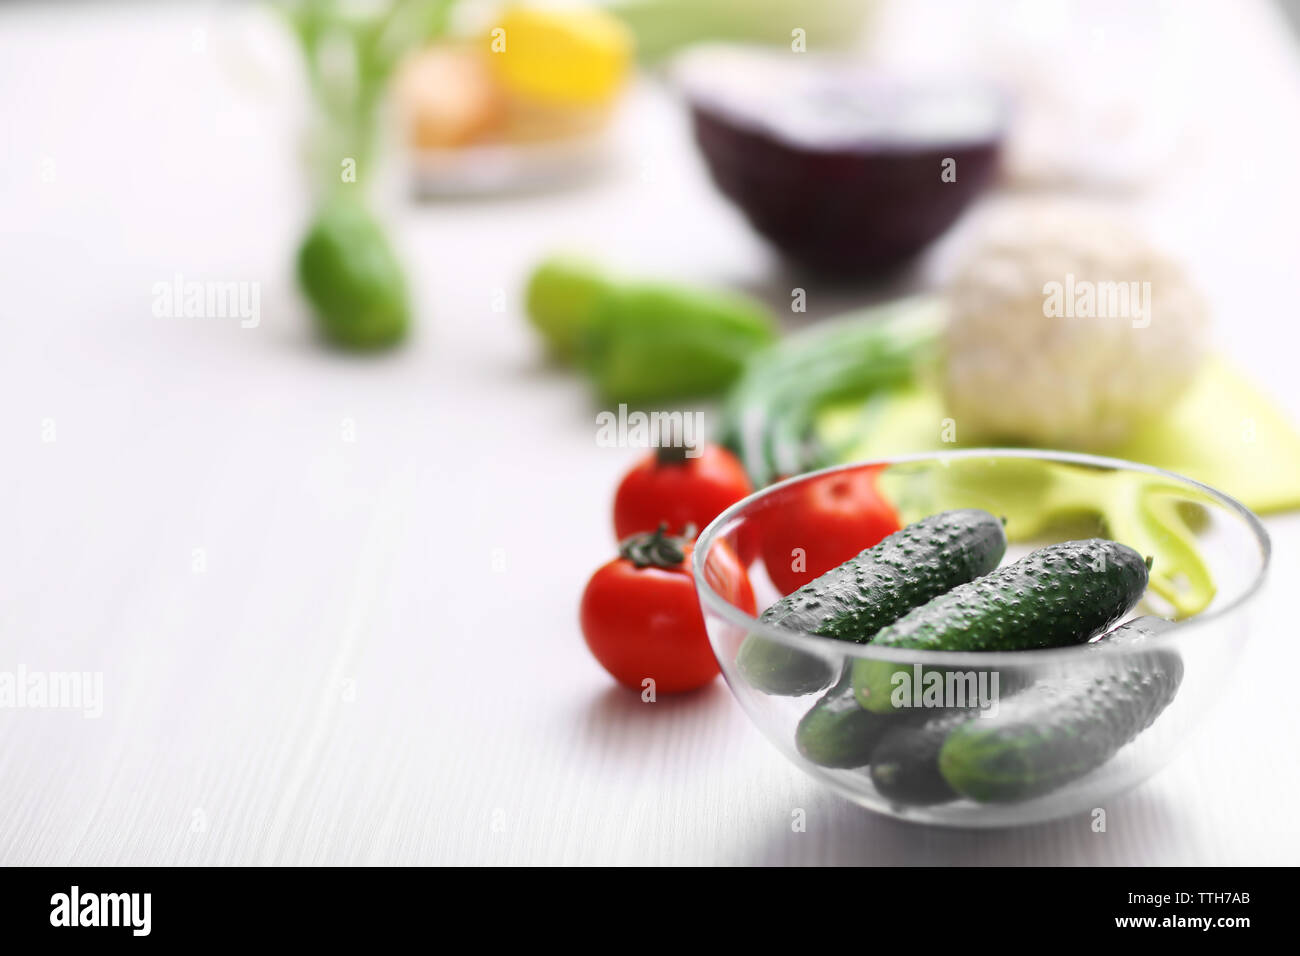 Fresh vegetables on a kitchen table - Stock Image